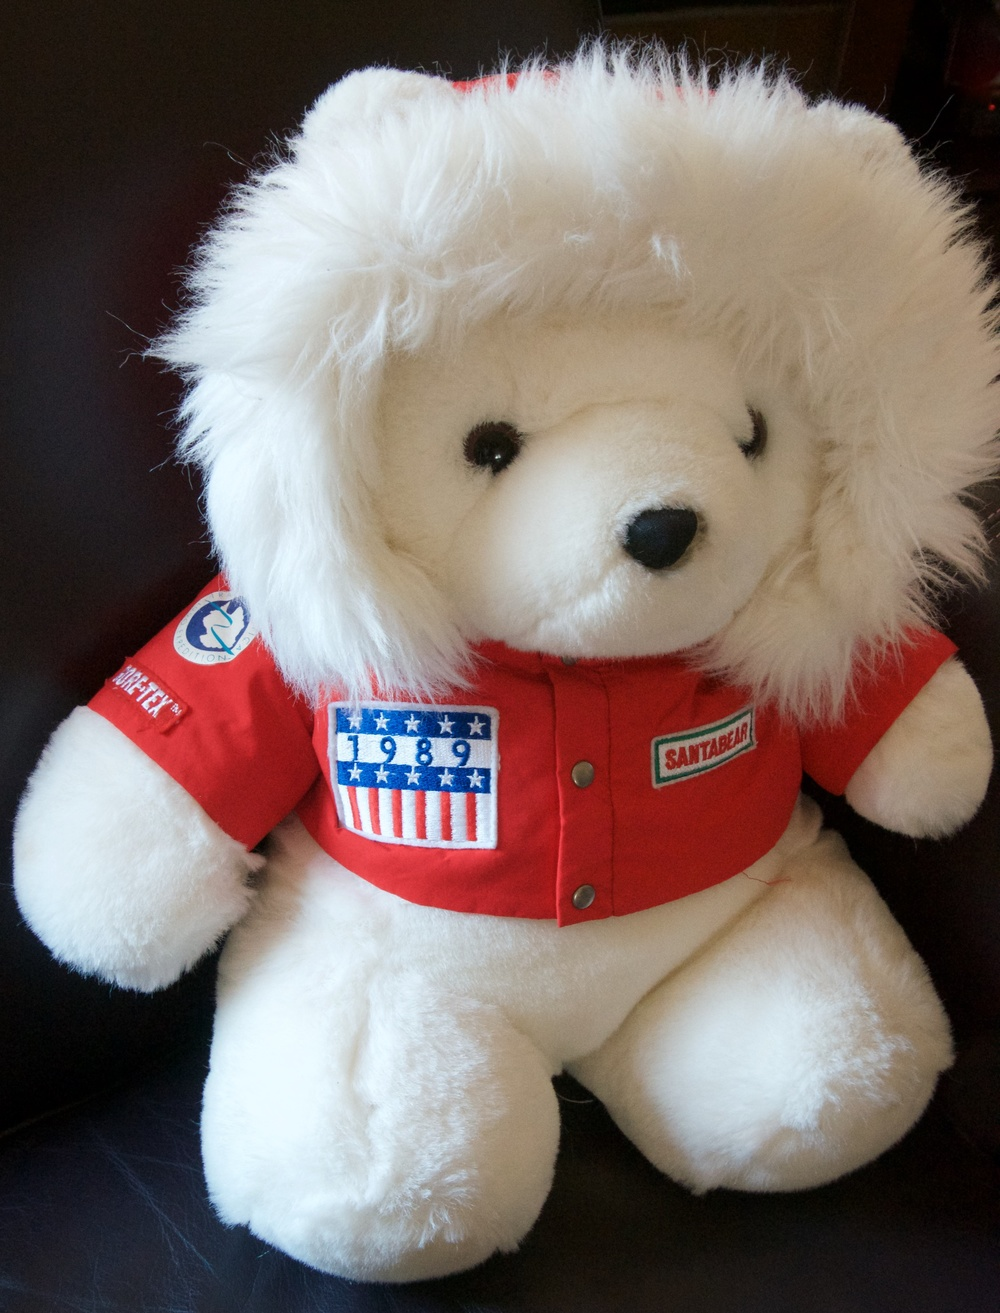 Daytons Department Store's 1989 Santa Bear wore a Gore-Tex jacket with a Trans-Antarctica logo and Gore-Tex label on its sleeve. Photo: ©Cathy de Moll